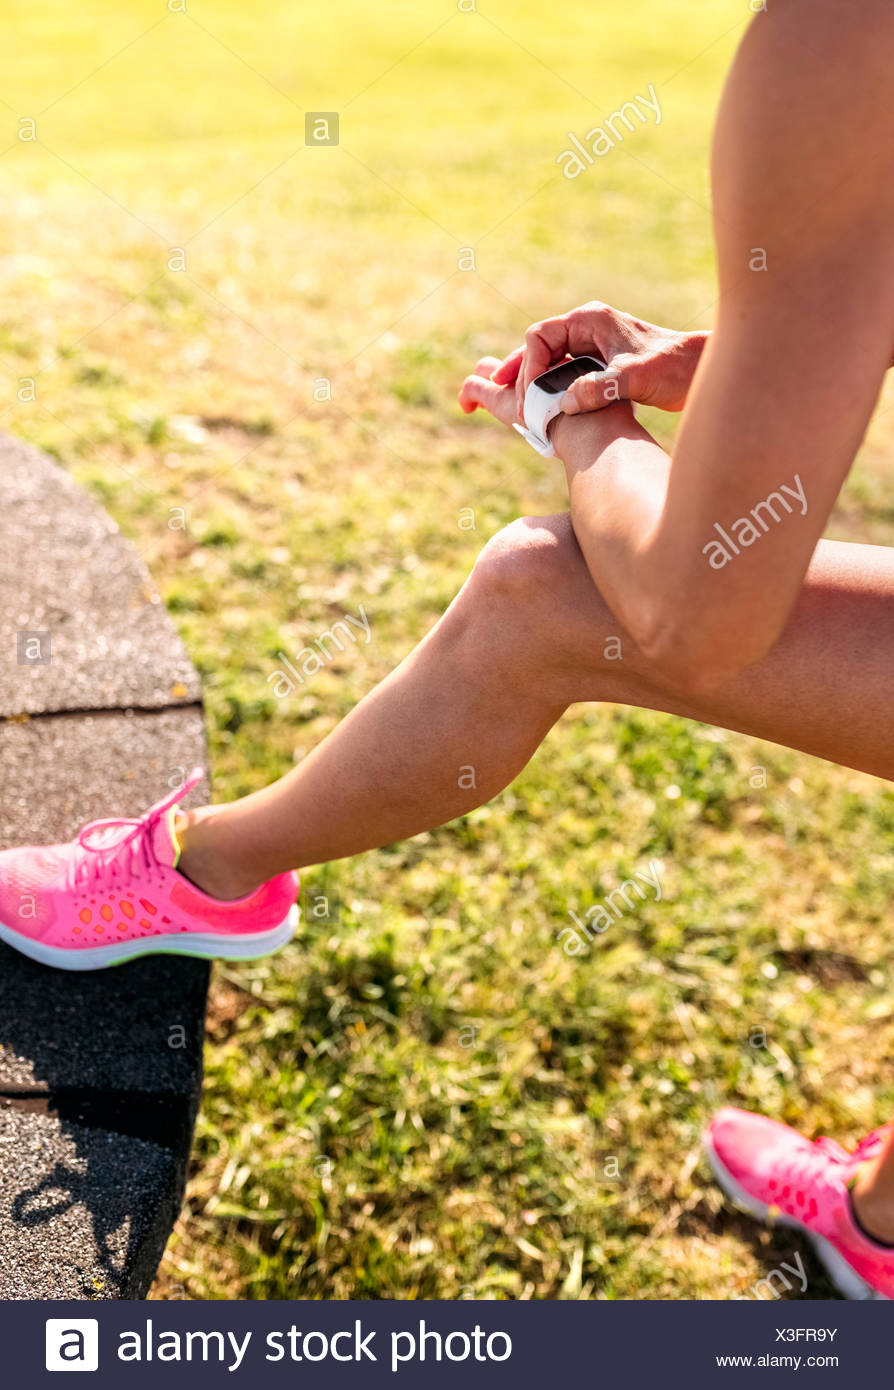 Woman checking heart rate monitor - Stock Image